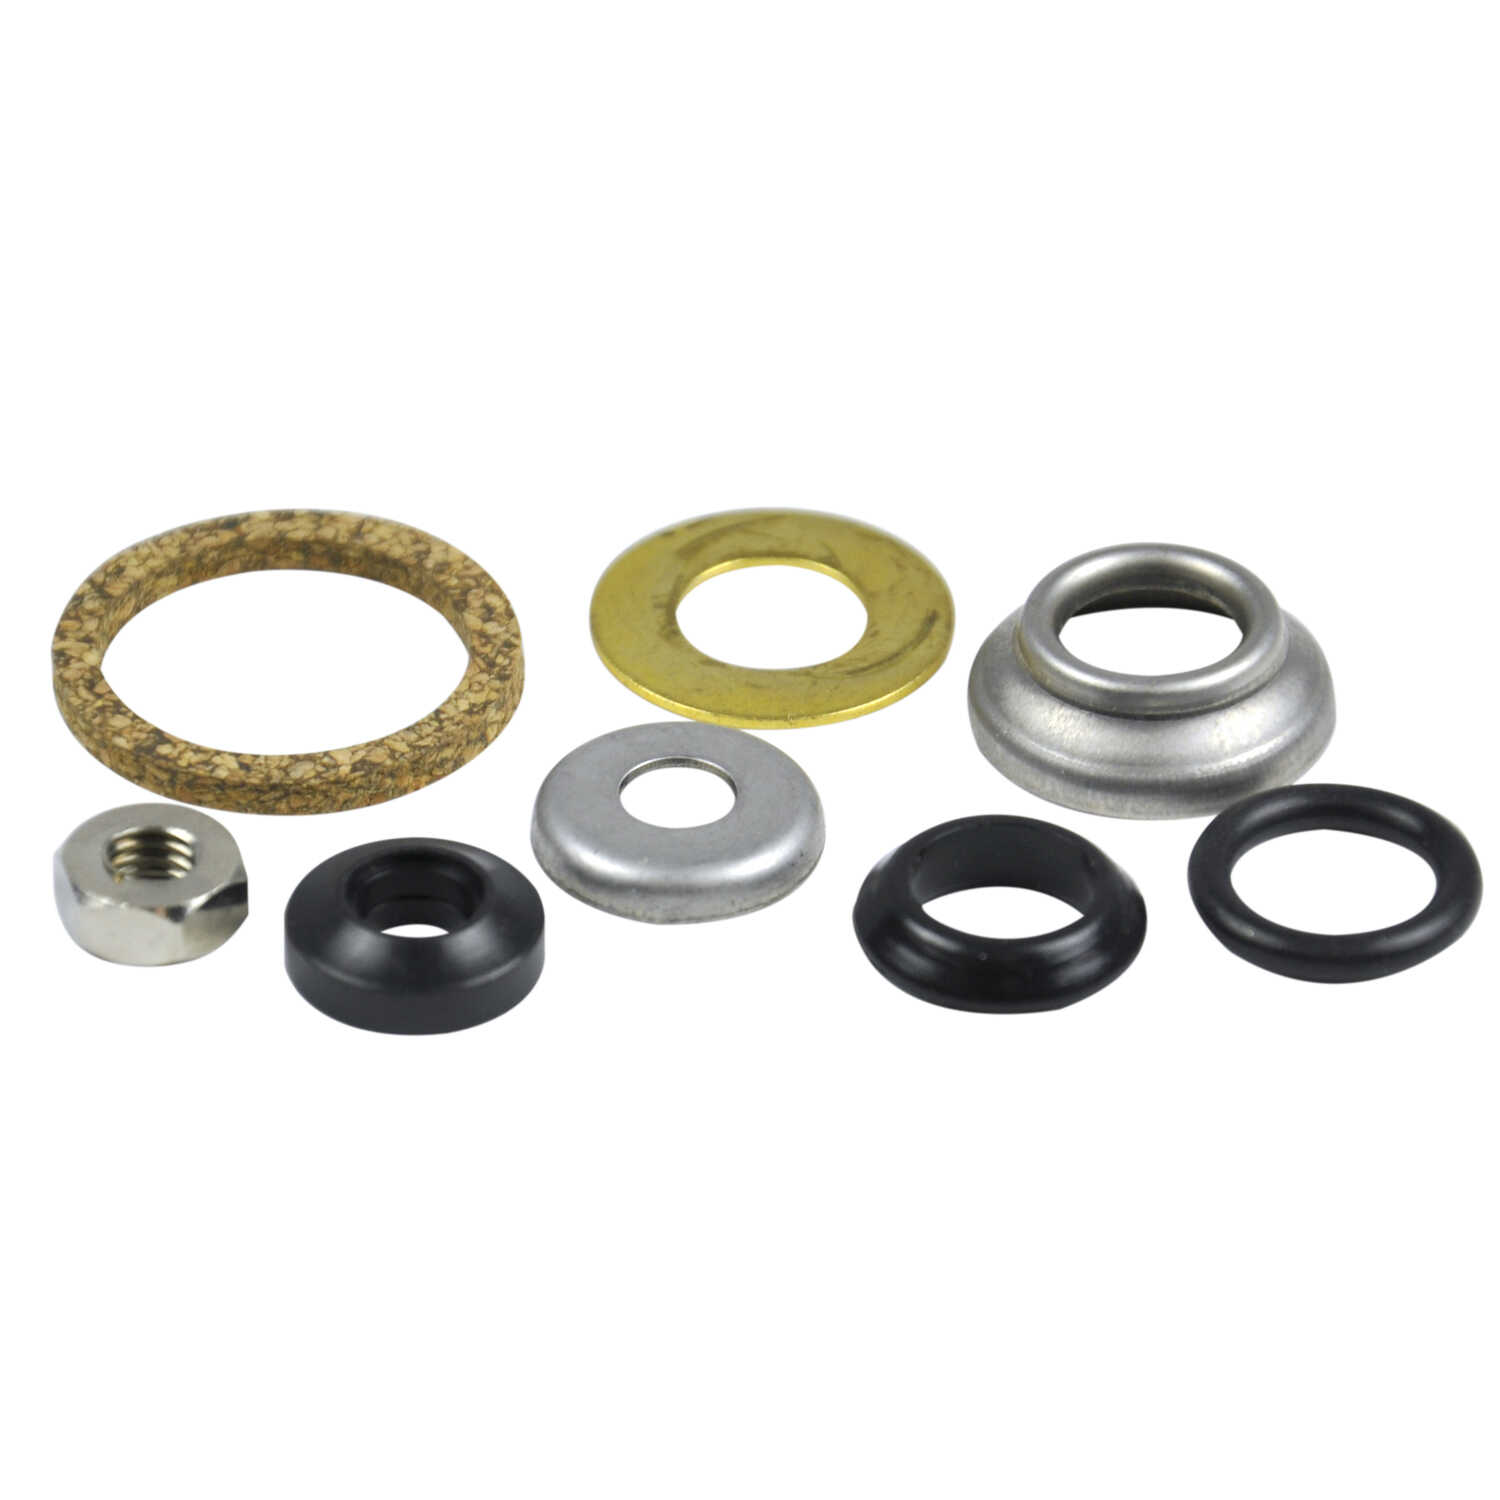 Danco  Hot and Cold  Stem Repair Kit  For Chicago Faucets